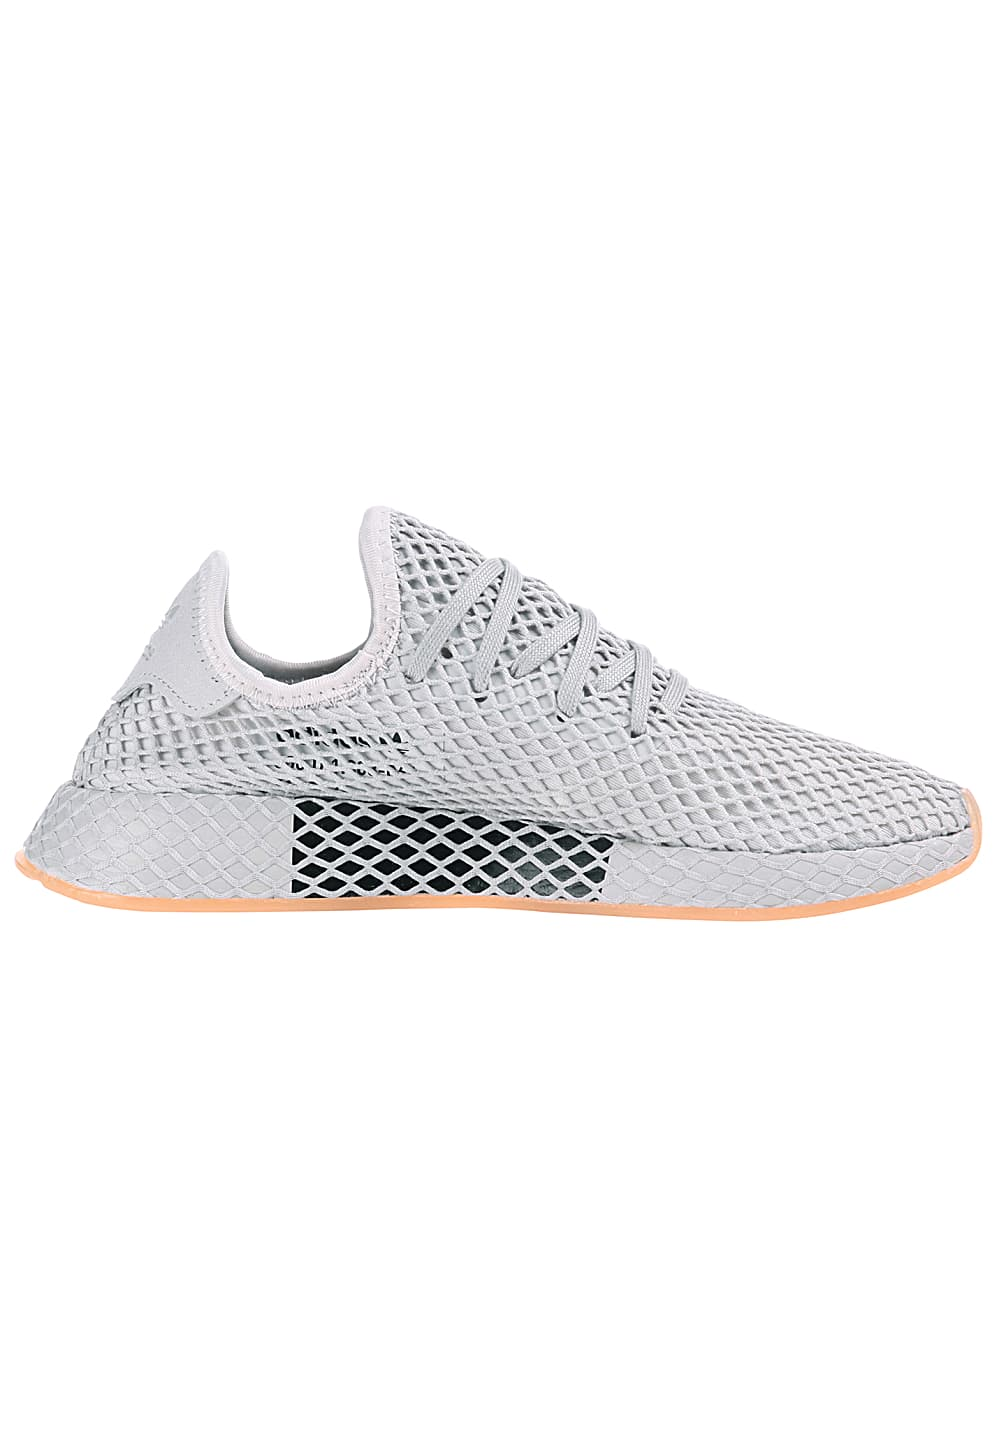 new product 2d0ae 36e3f Next. -20%. ADIDAS ORIGINALS. Deerupt Runner - Baskets pour Homme. Prix  normal ...